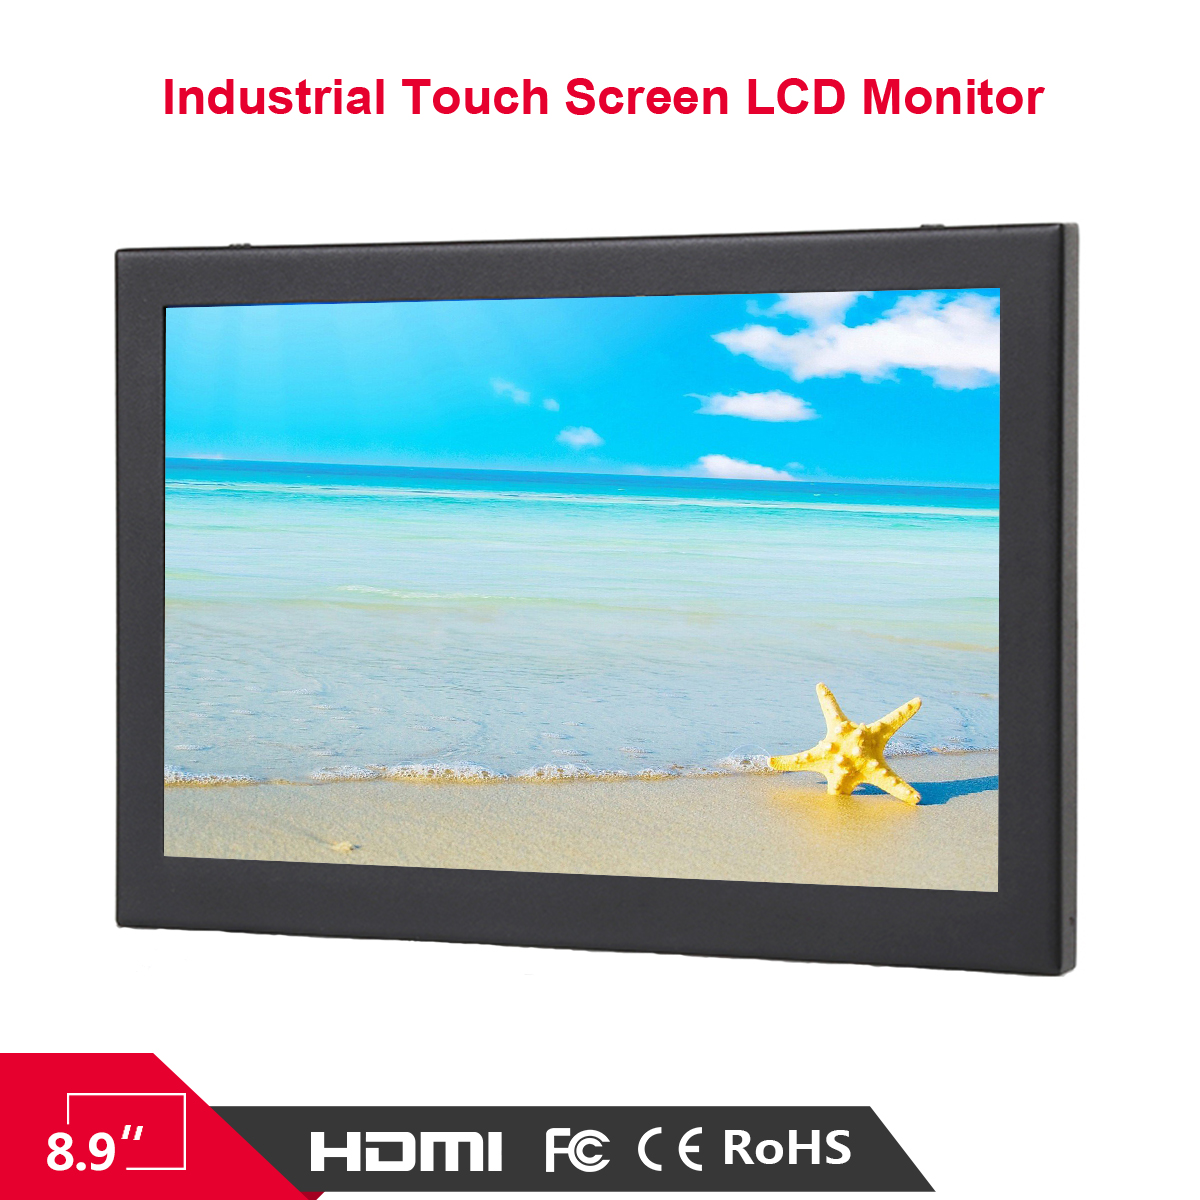 Bestview cheap price industrial display 8.9 inch Touch Screen Monitor with metal case used for KIOSK ATM KTV Gaming Machnies